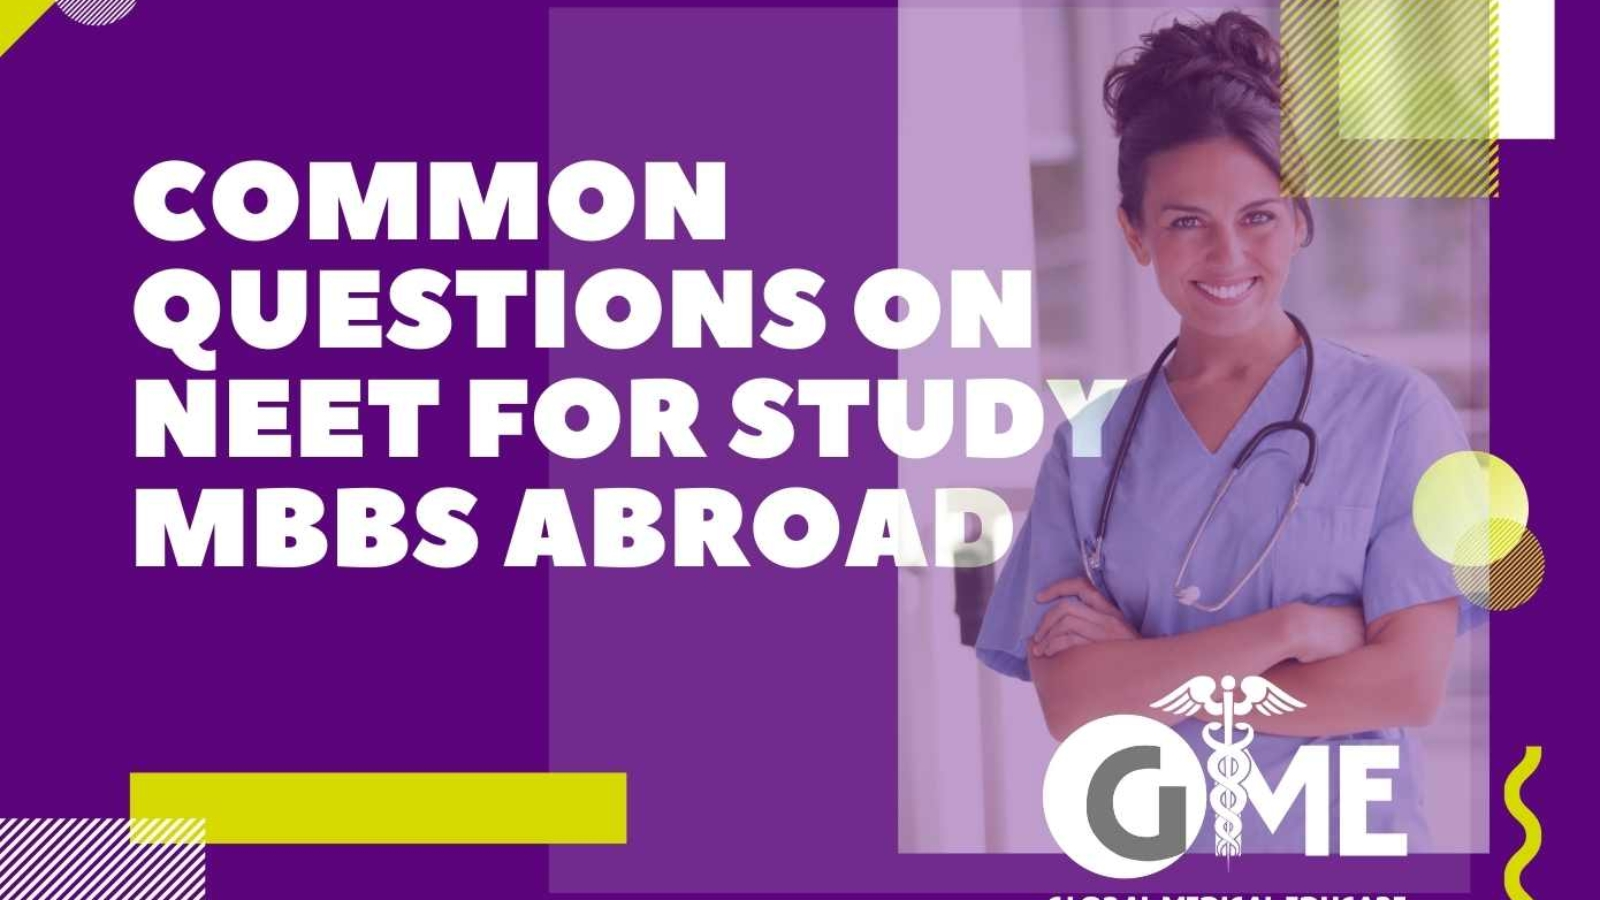 Common Questions on NEET for Study MBBS Abroad